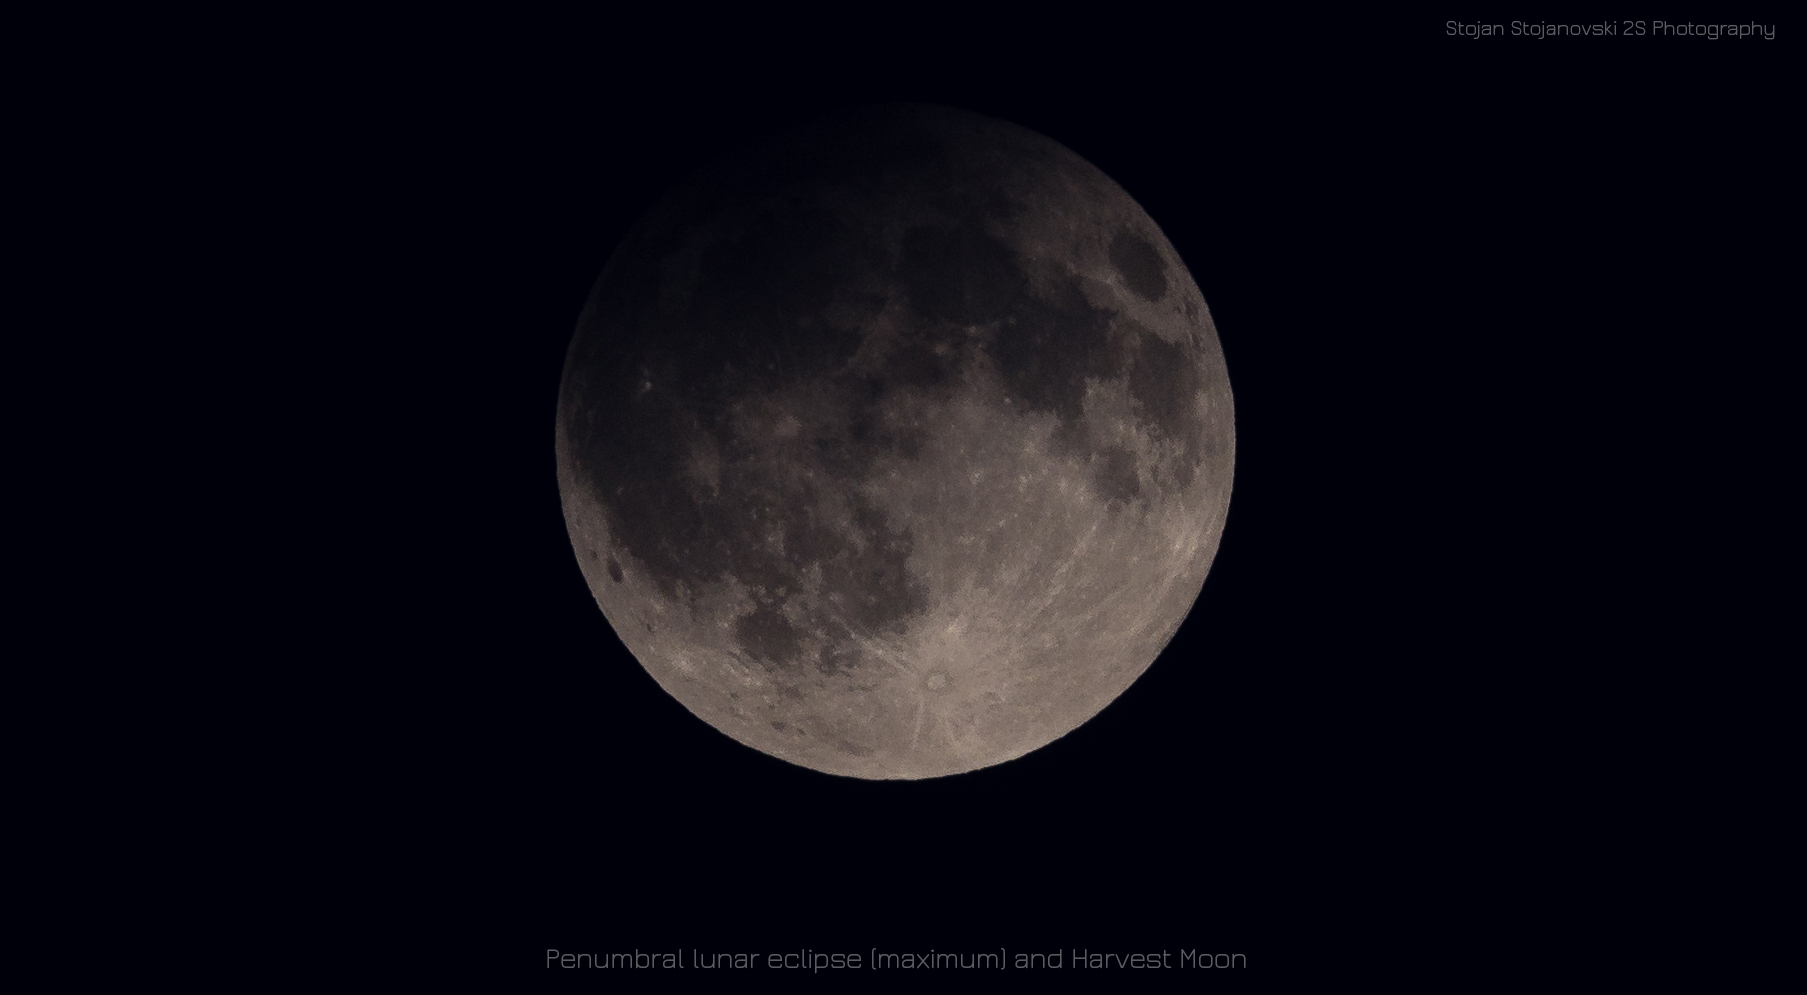 In Photos: The Harvest Moon Lunar Eclipse of 2016